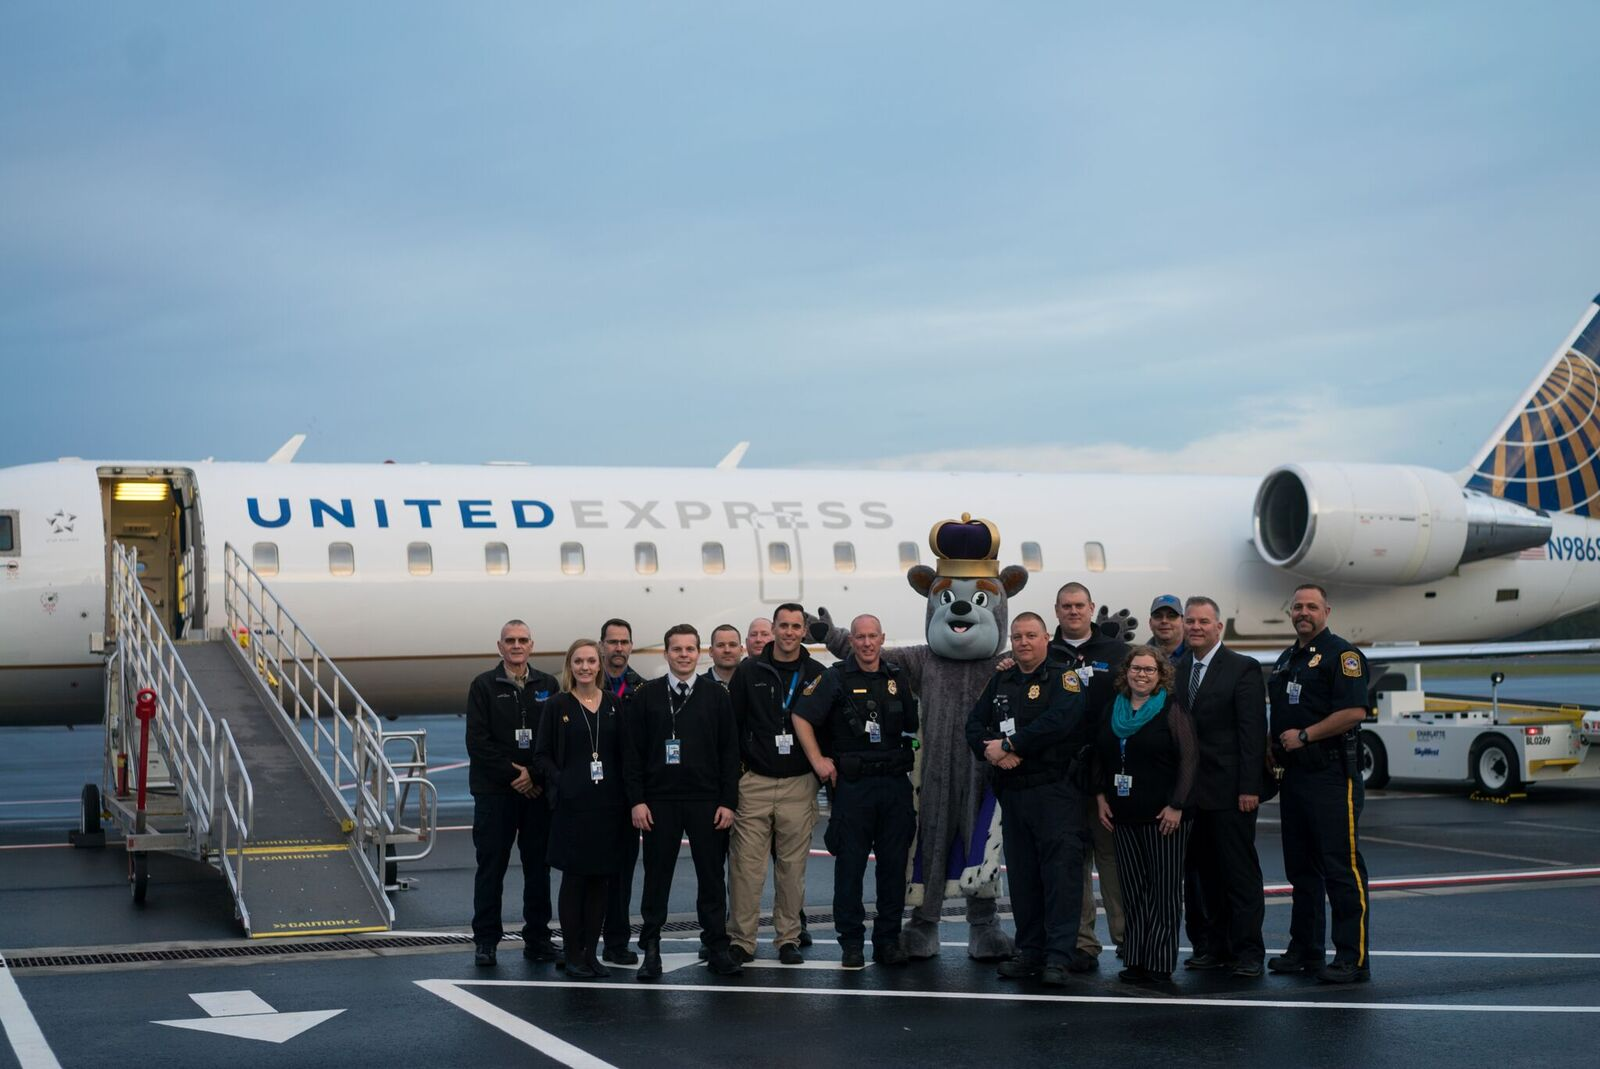 JMU Duke Dog and SHD staff standing in front of a United jet.